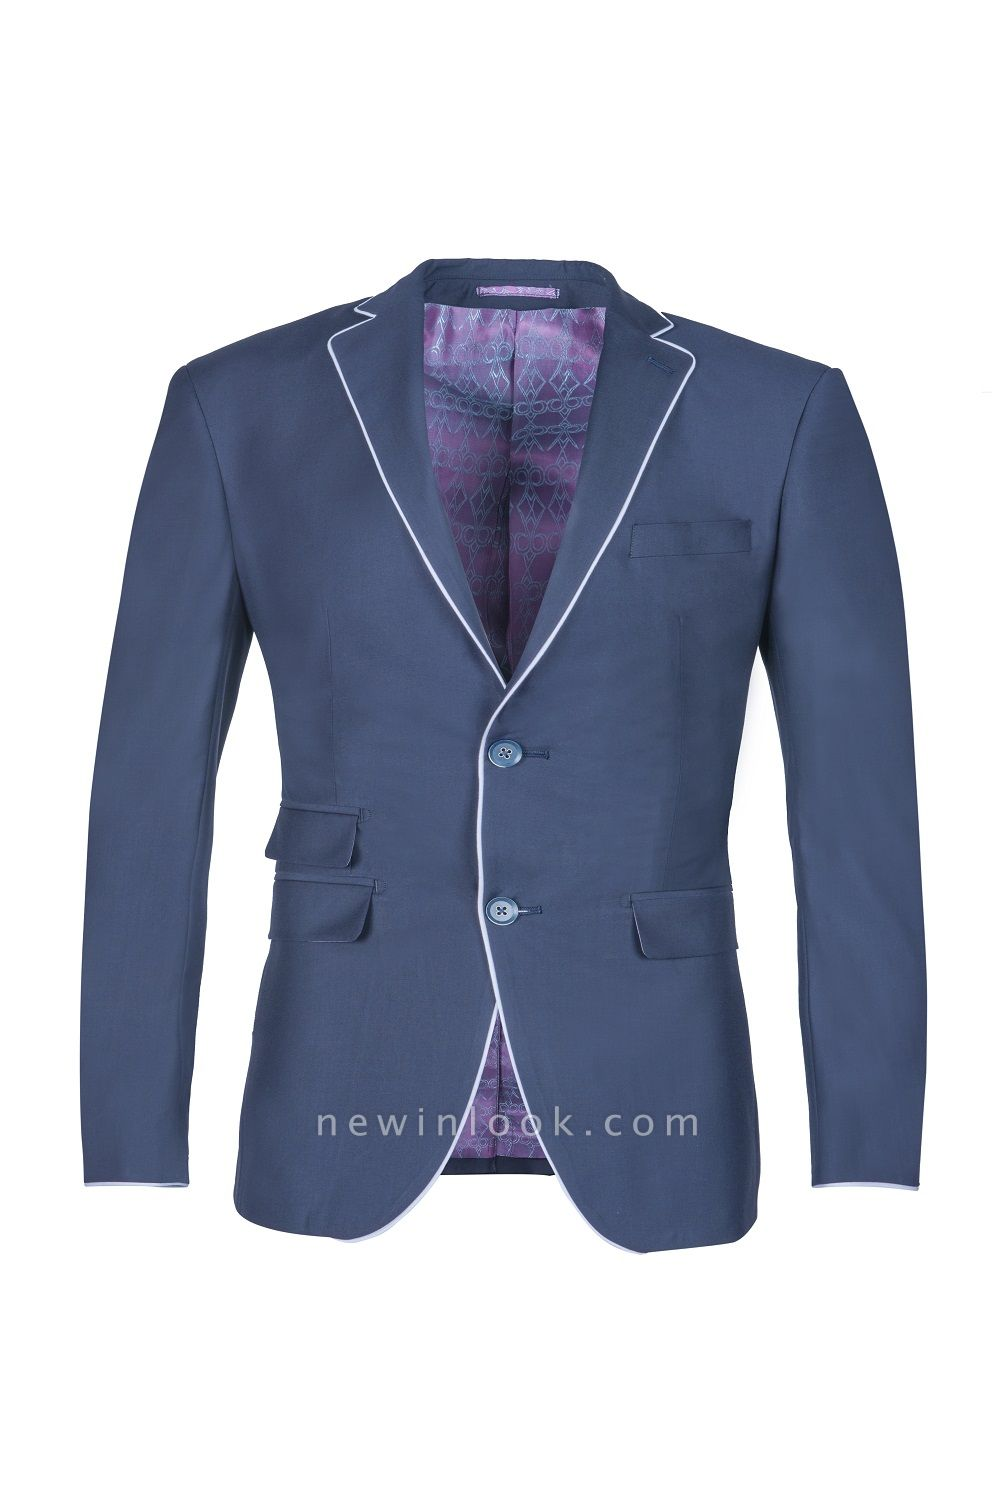 Popular Stylish Design Ink Blue Peak Lapel Two Button Chambelanes